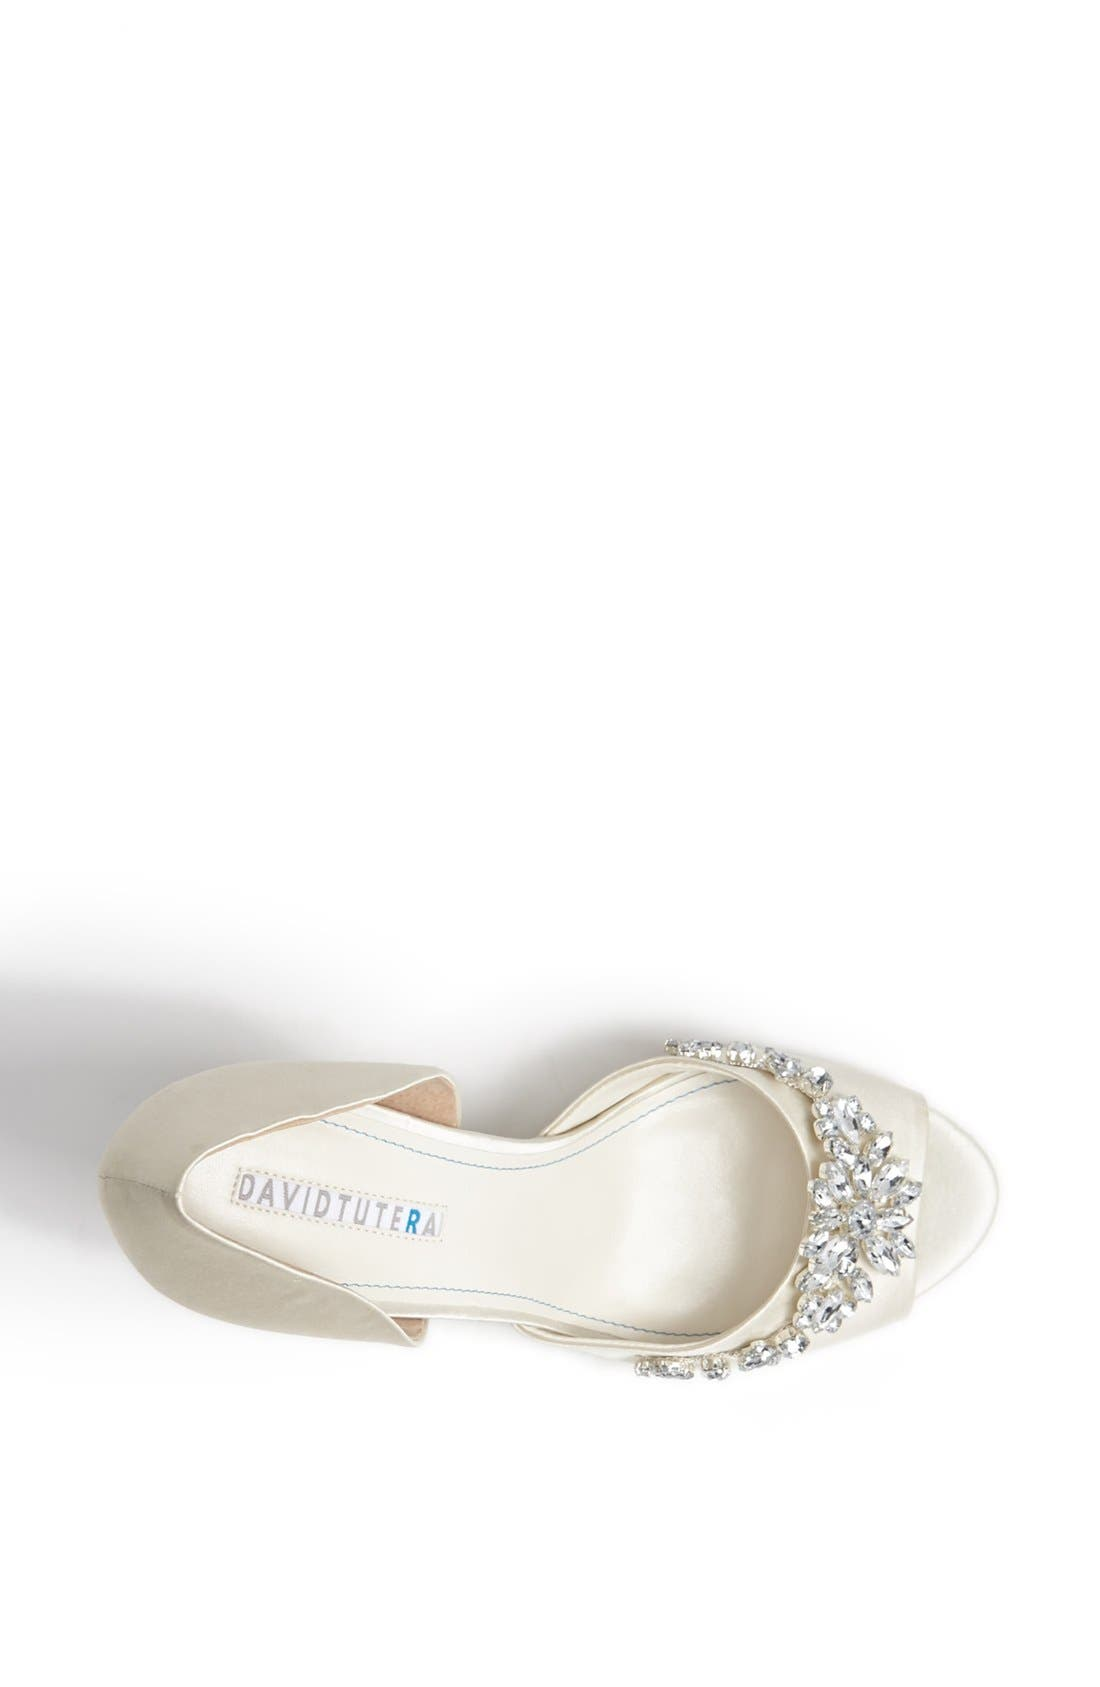 'Winter' Wedge Sandal,                             Alternate thumbnail 3, color,                             Ivory Satin